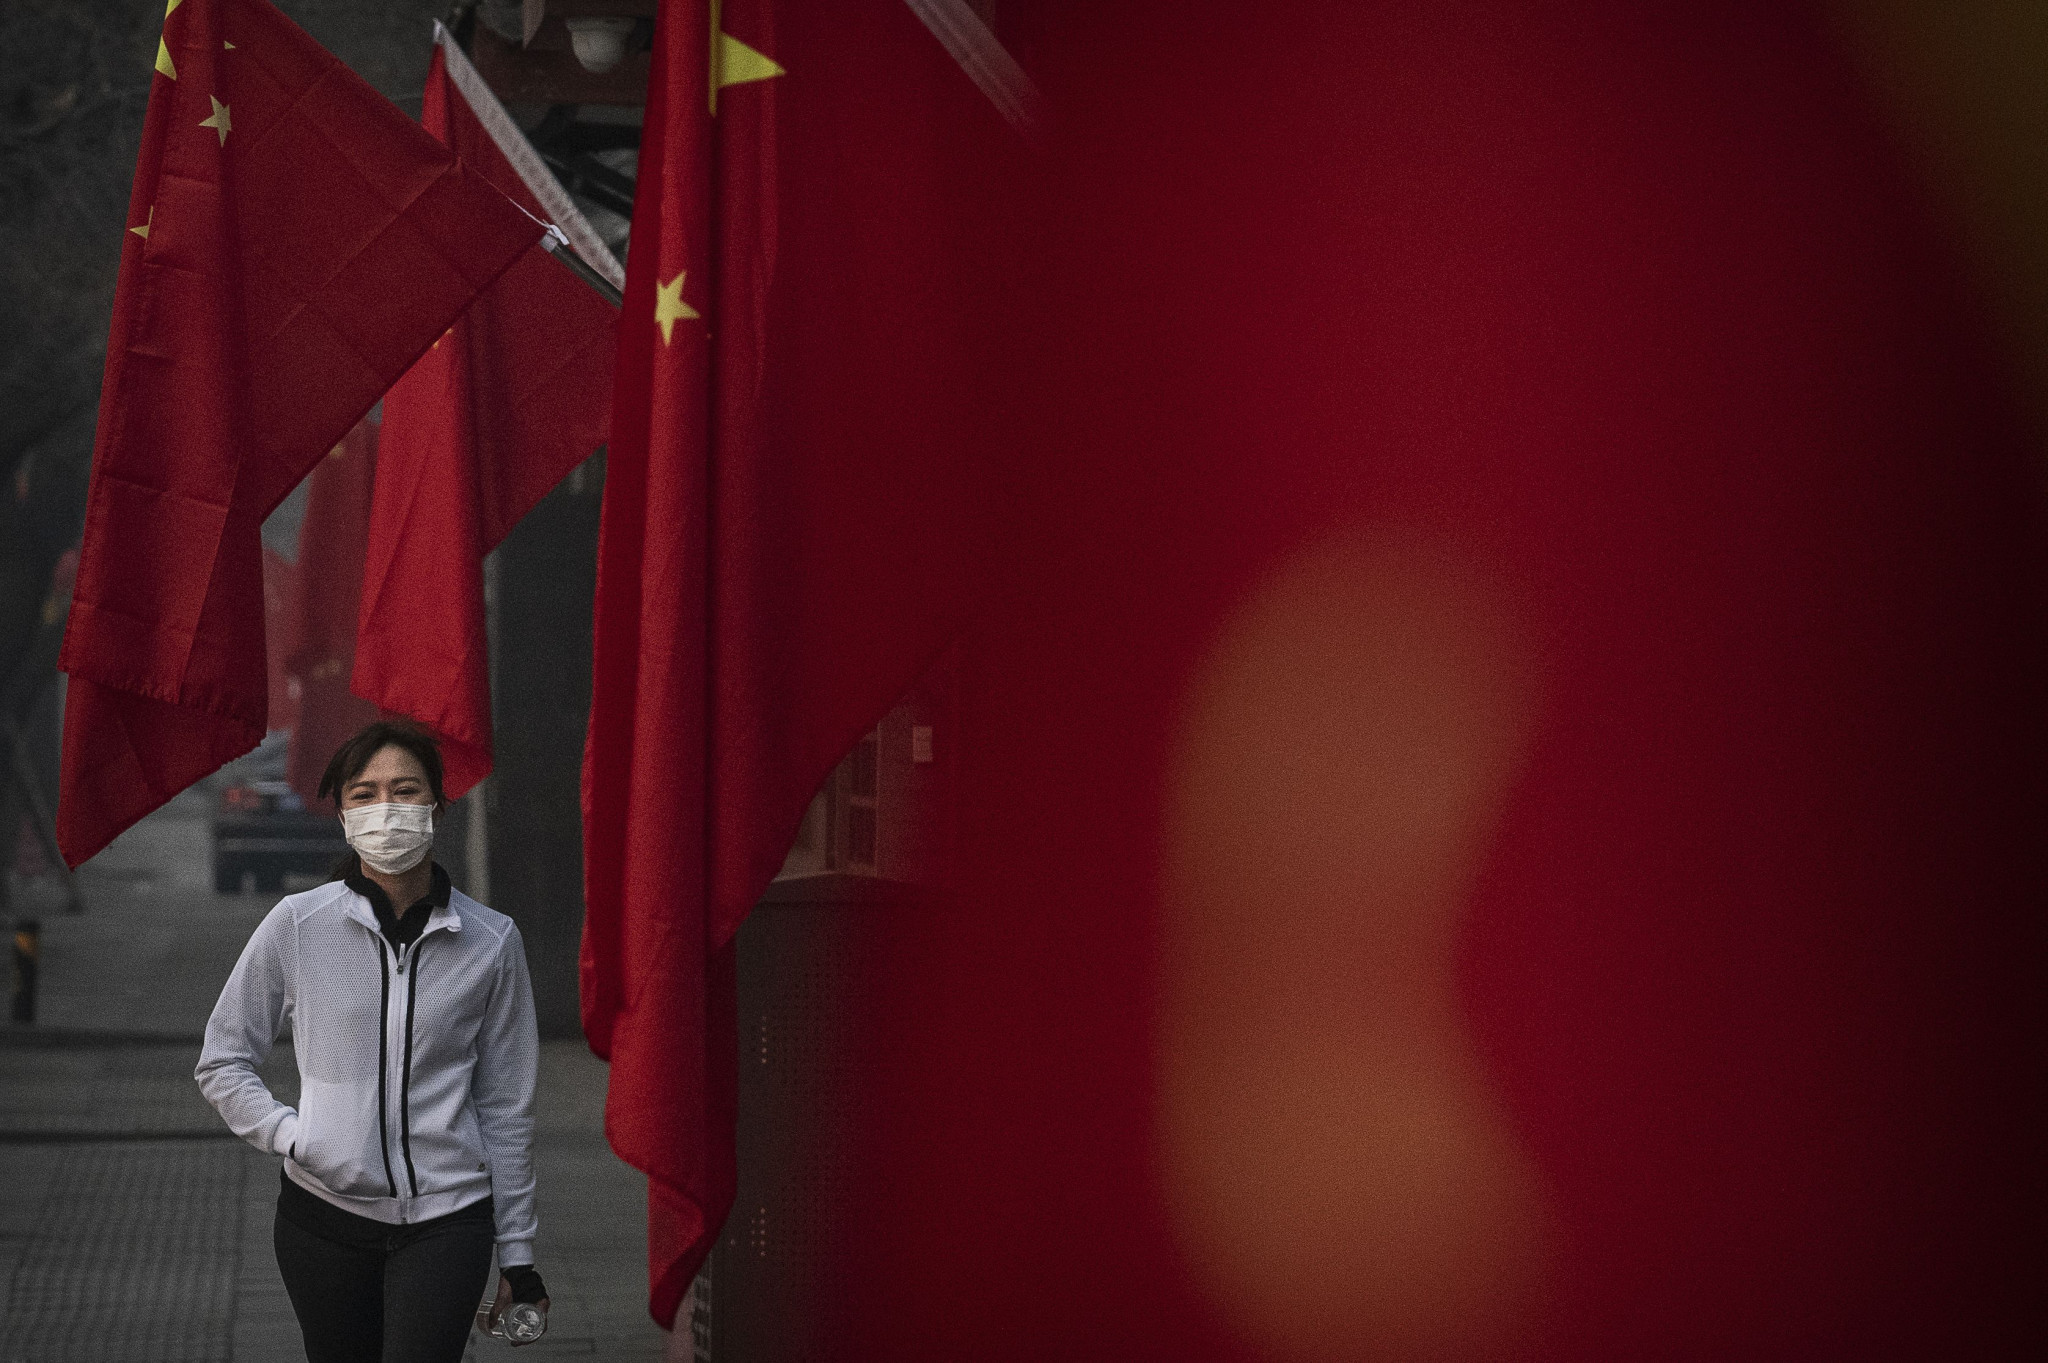 Coronavirus outbreak forces cancellation of opening Beijing 2022 test event